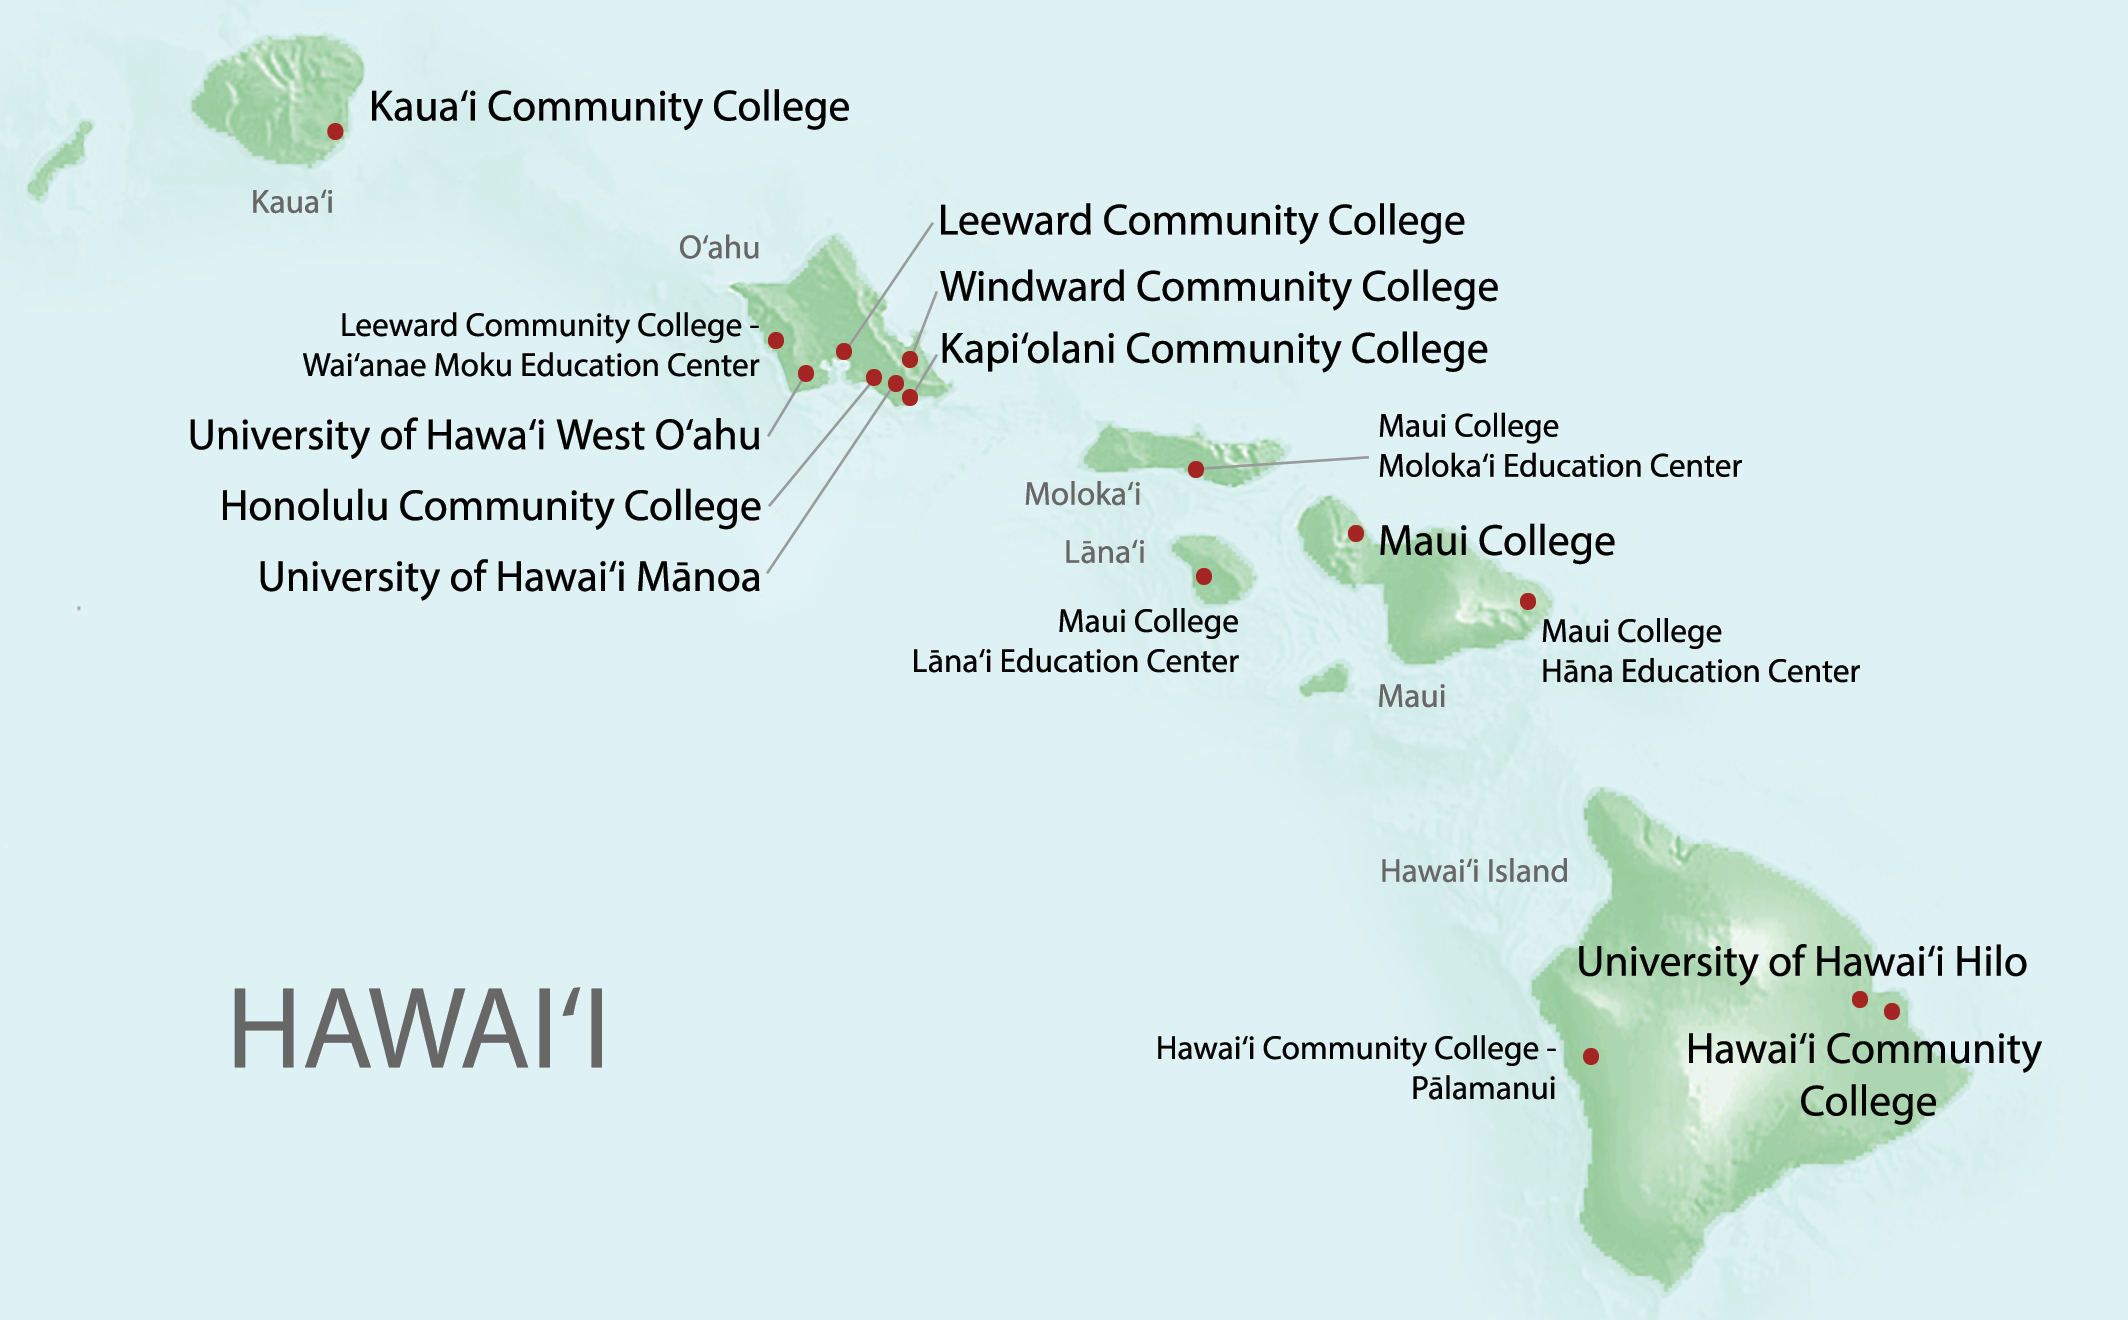 Map of University of Hawaii campuses to show on what island and where each university, college and education center is located.